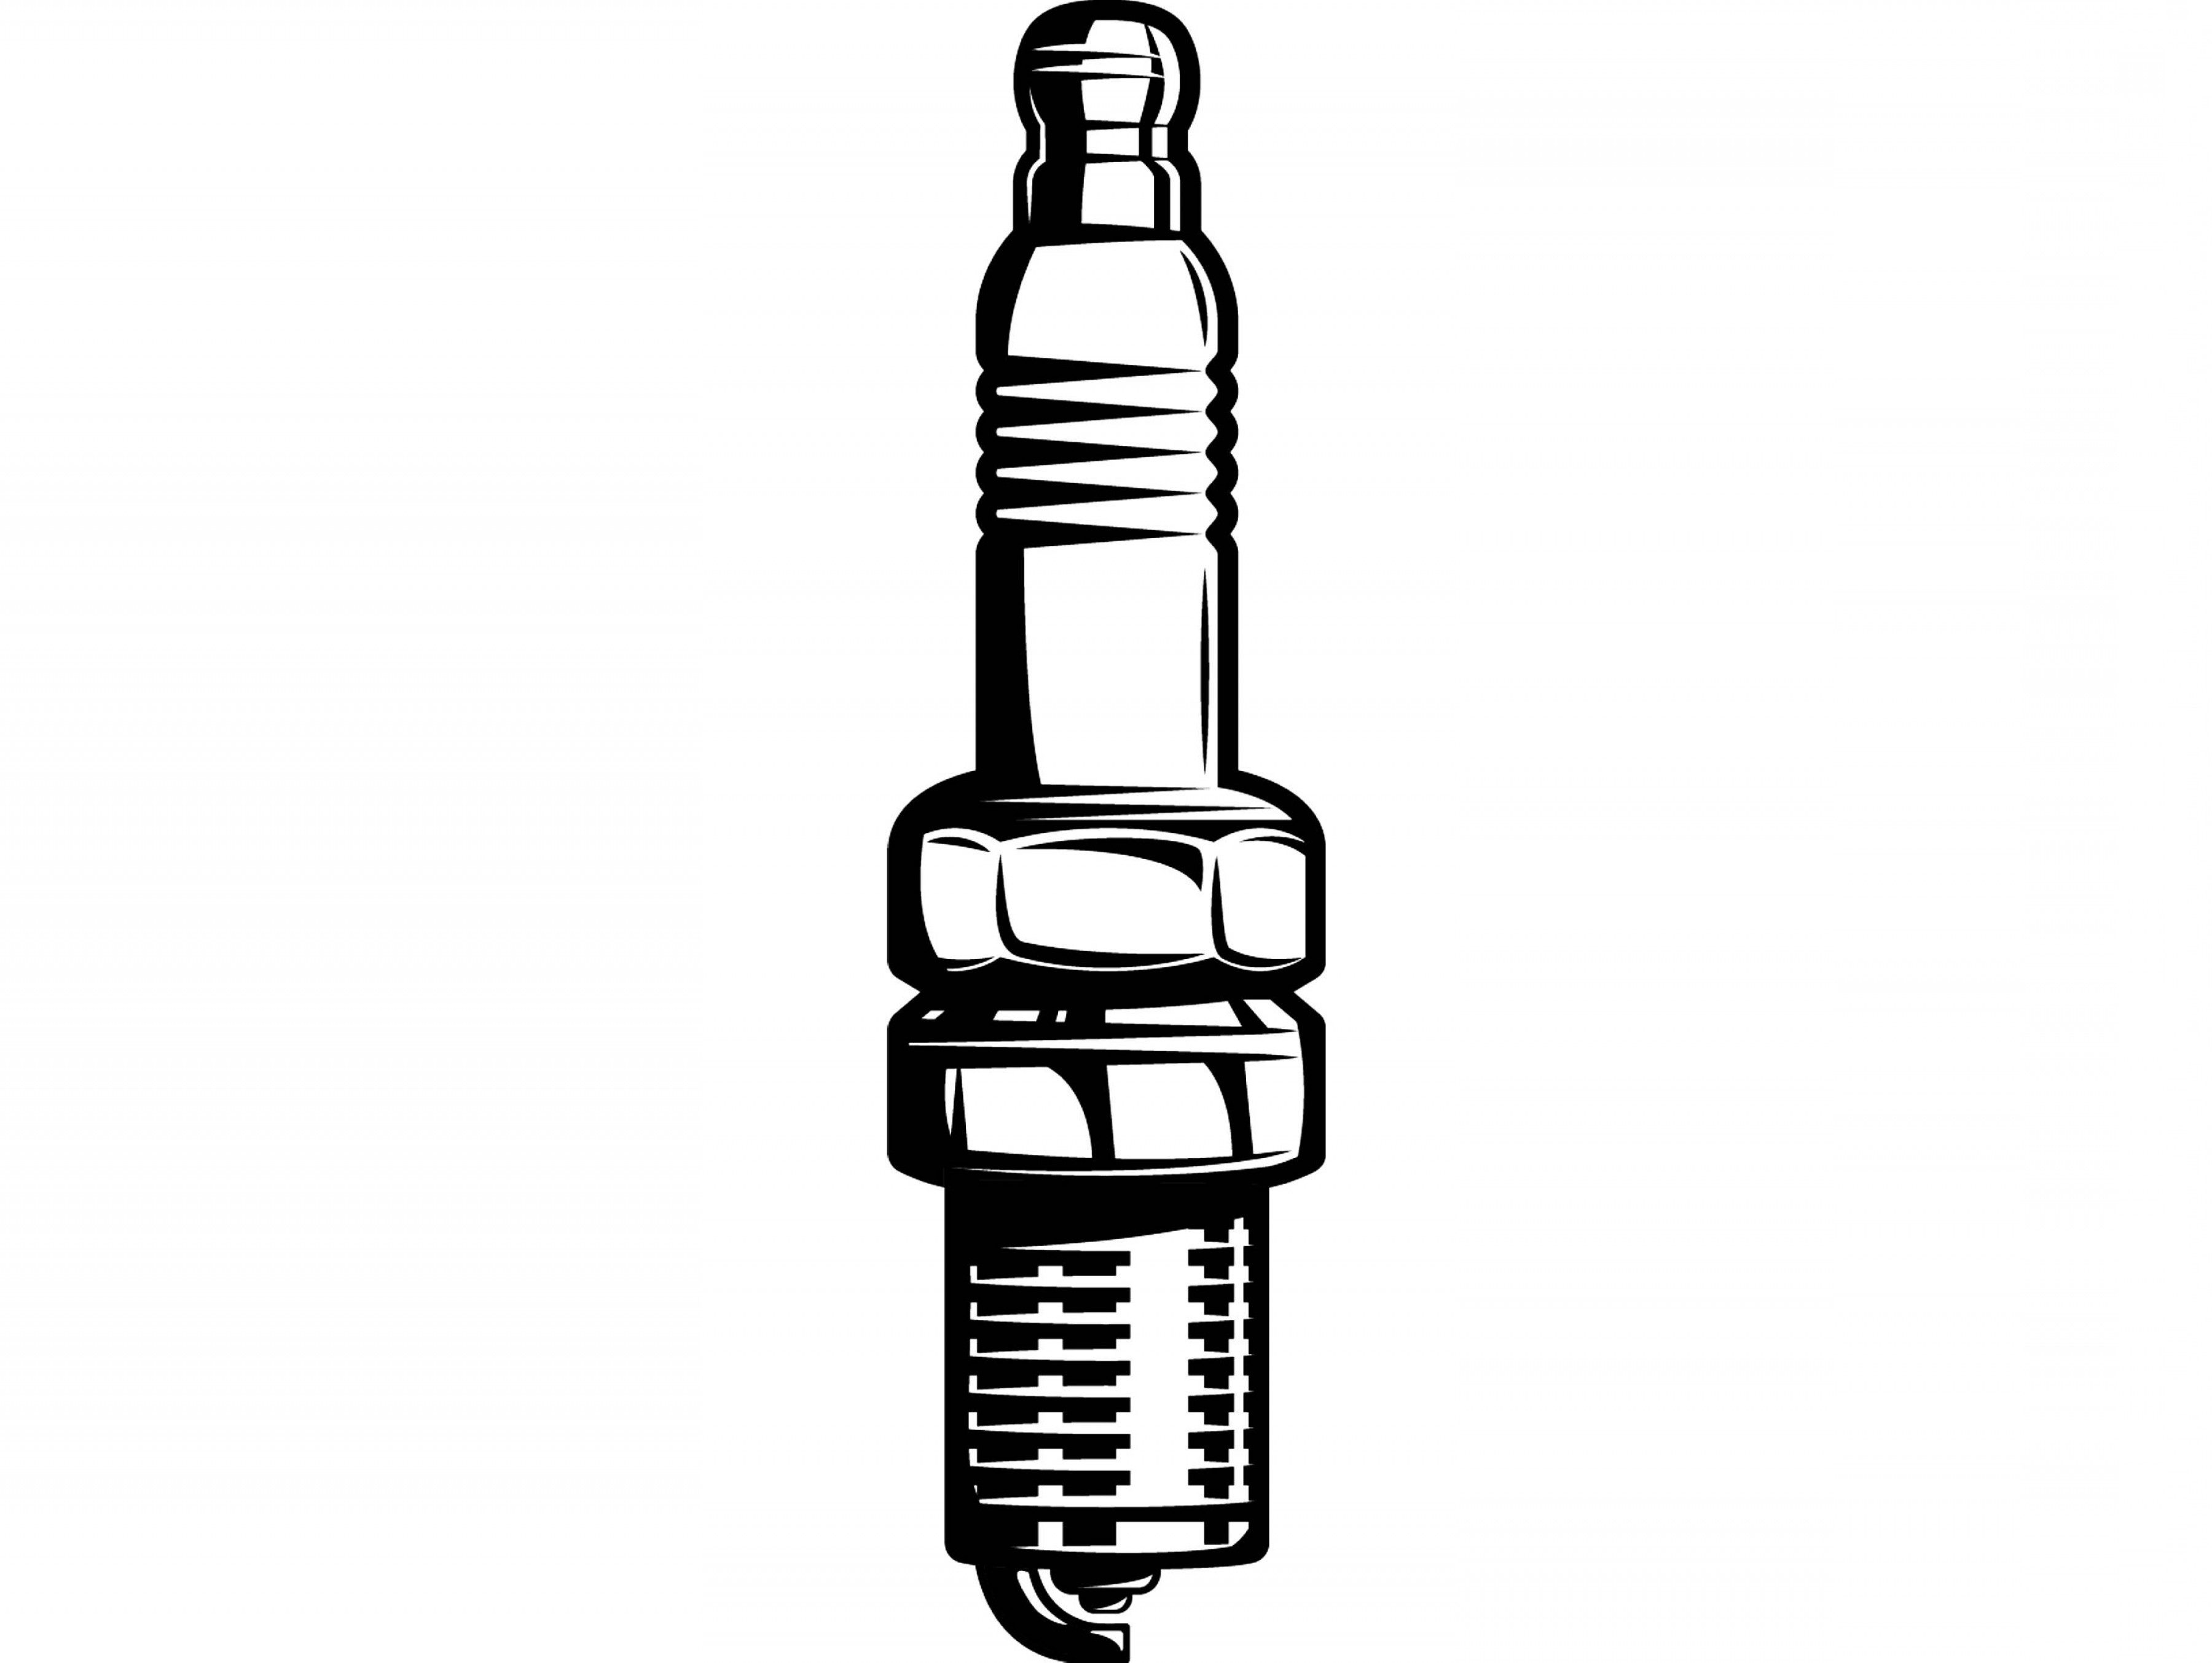 Spark Plug Vector: Spark Plug Mechanic Motor Engine